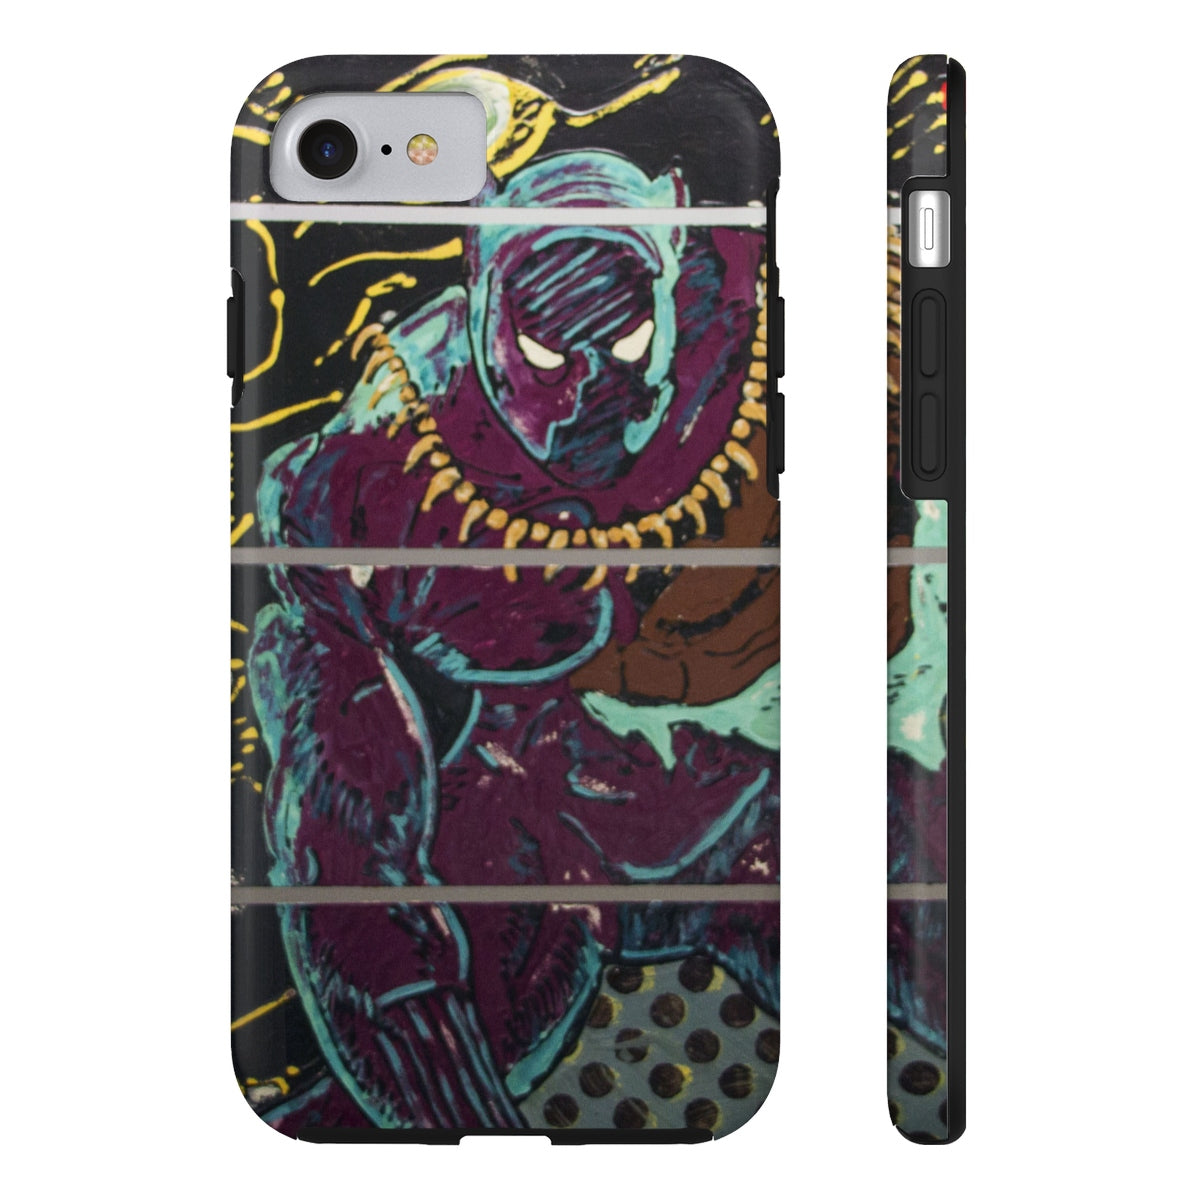 (Justice) Case Mate Tough Phone Cases